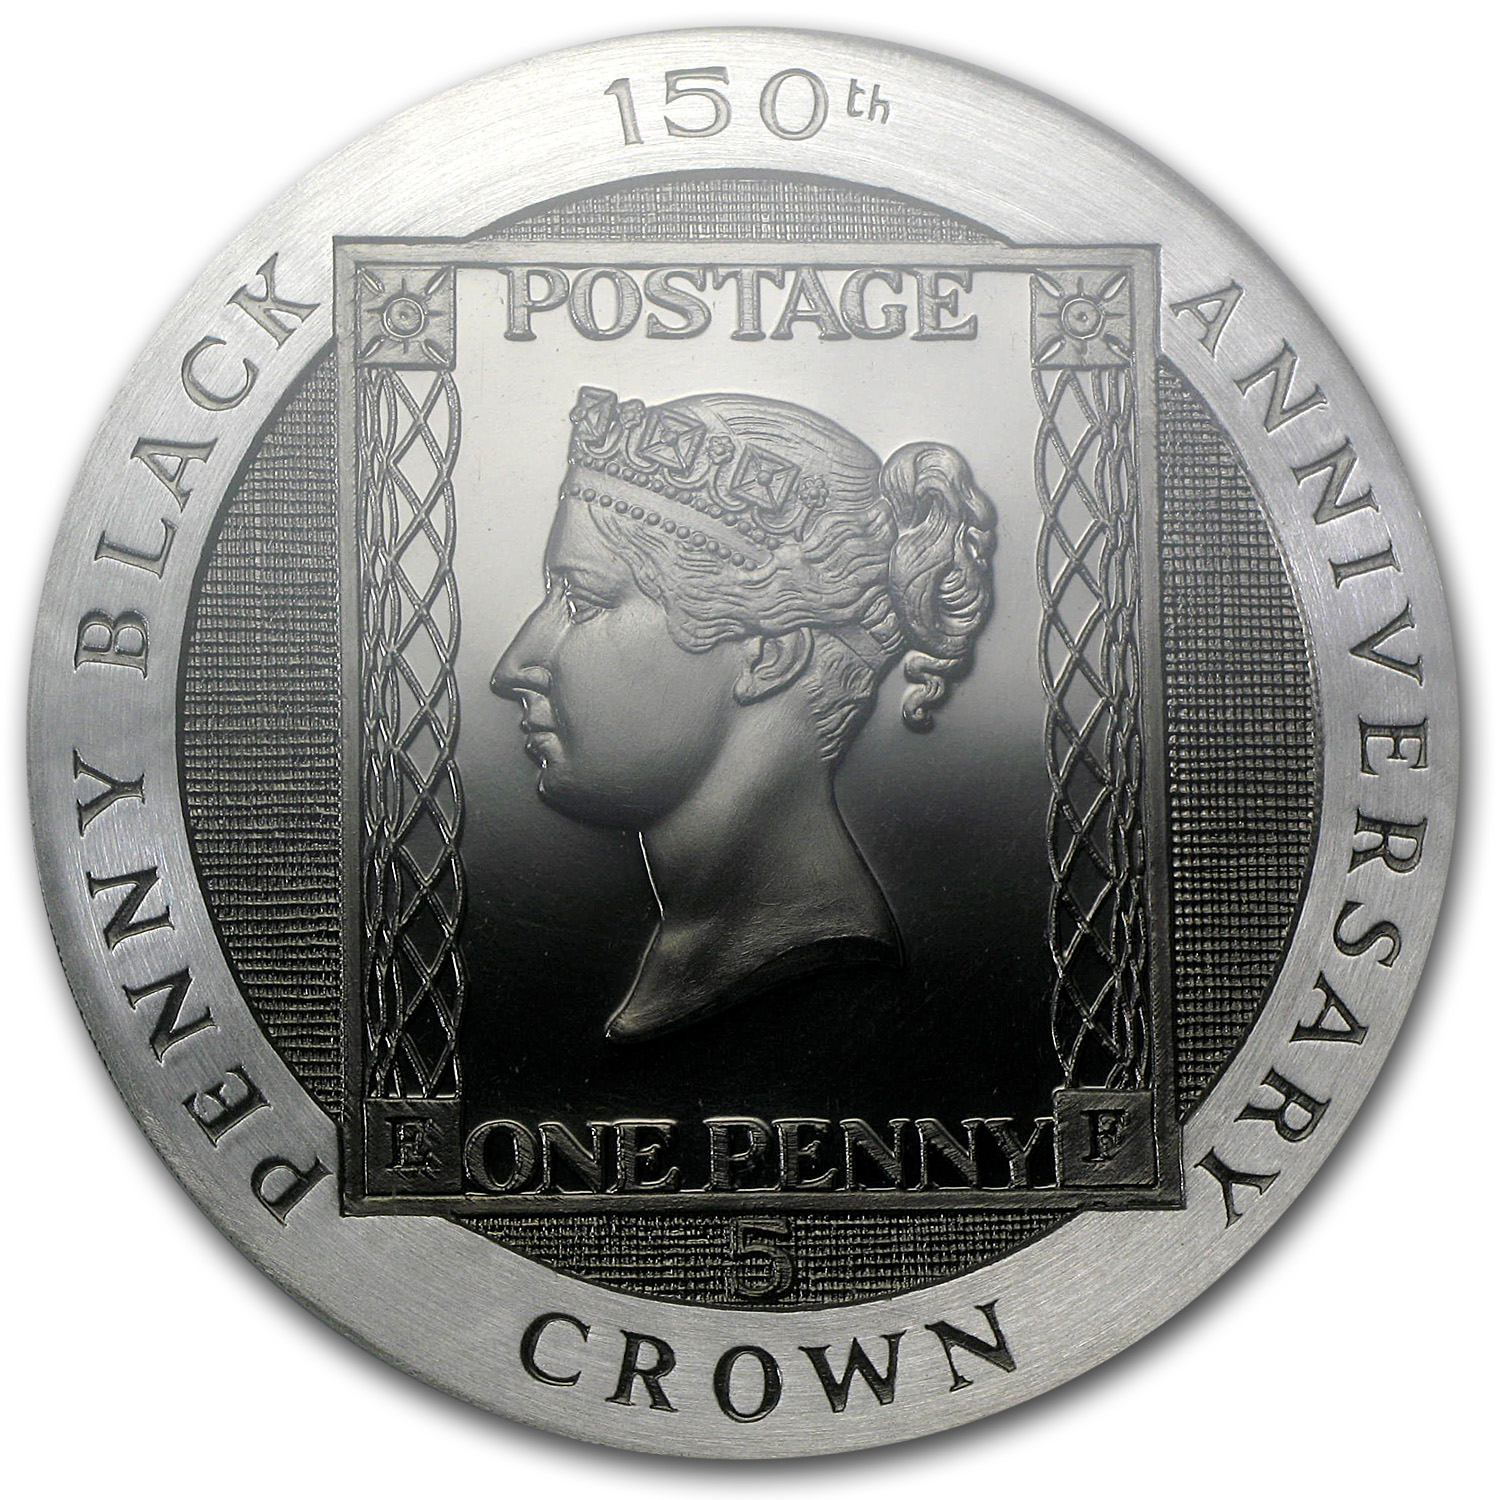 Isle of Man 1990 5 Crown Silver Penny Black NGC Gem Proof